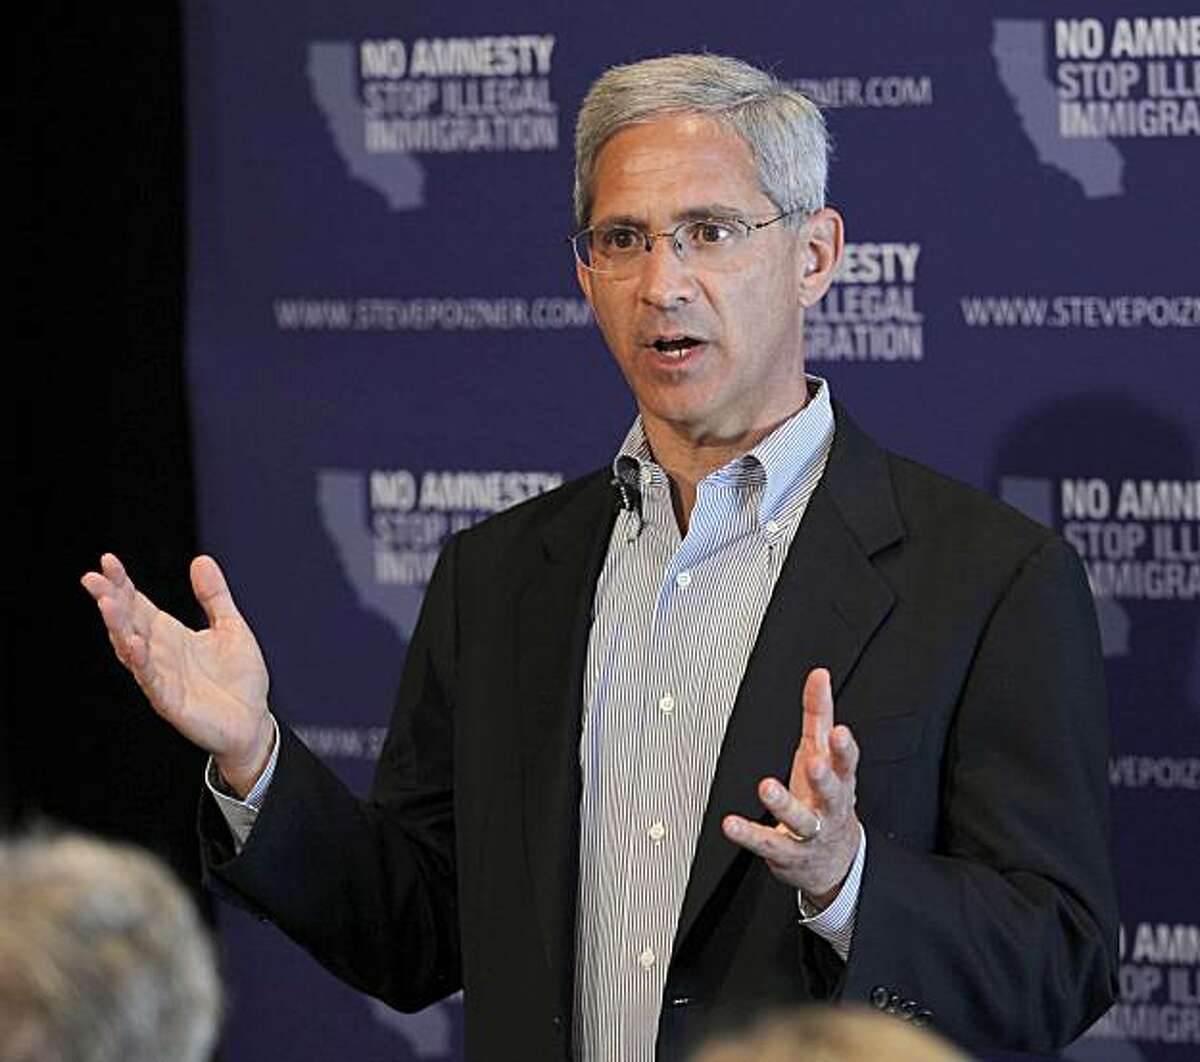 Steve Poizner, a candidate for the Republican nomination for Governor speaks to supporters at a town hall meeting in Riverside, Calif., Saturday, June 5, 2010.